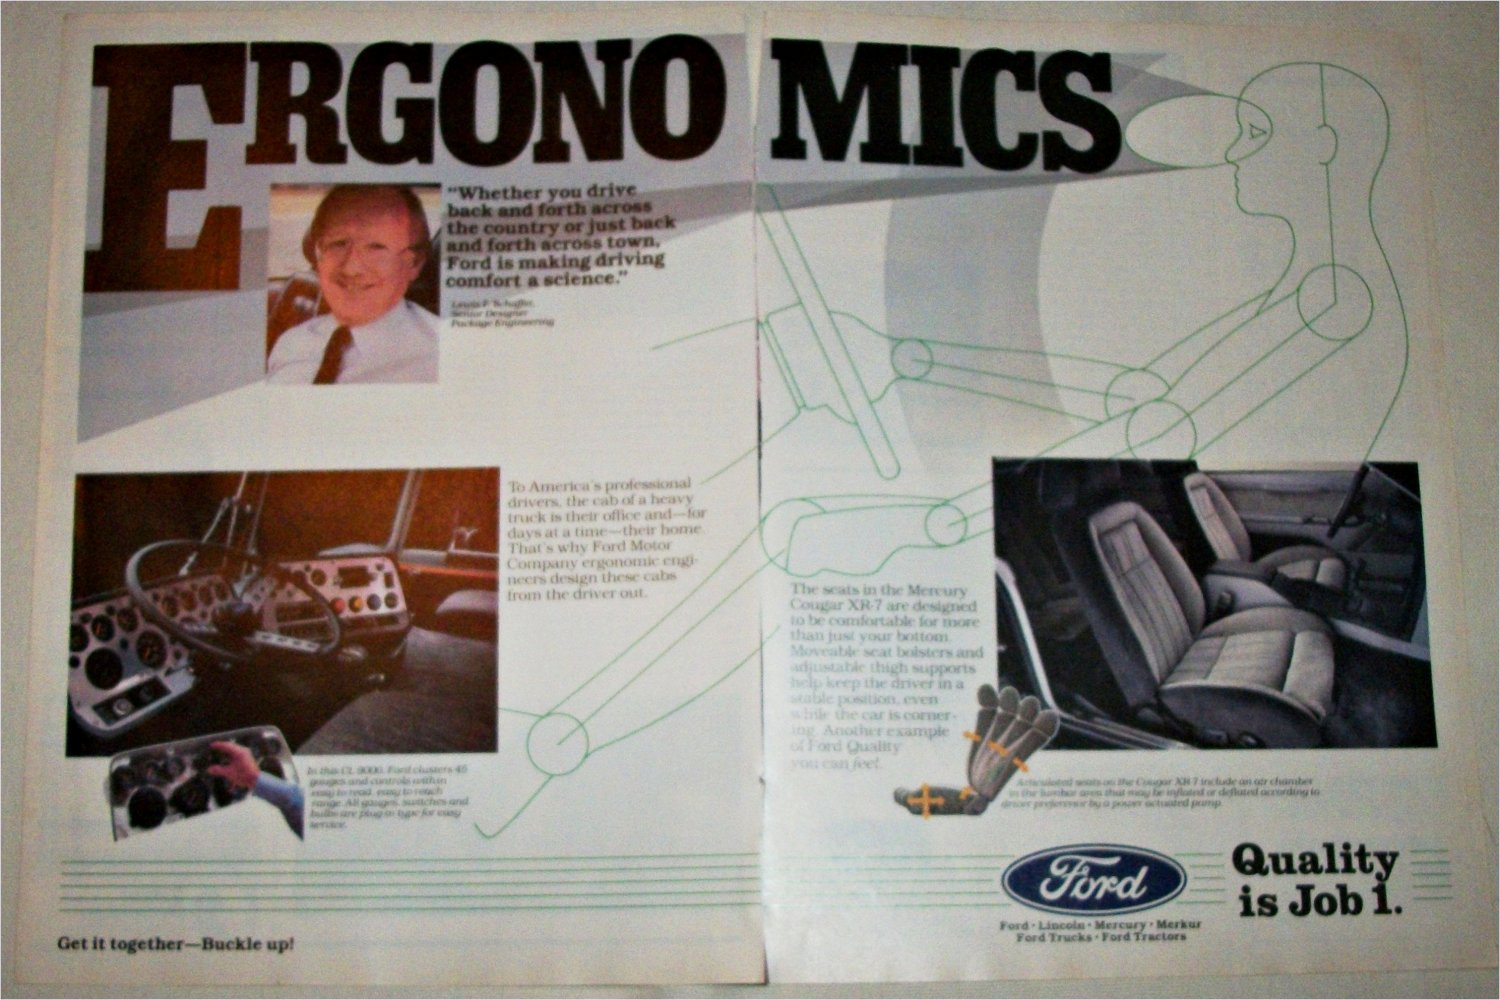 1985 Ford Quality Is Job 1 ad